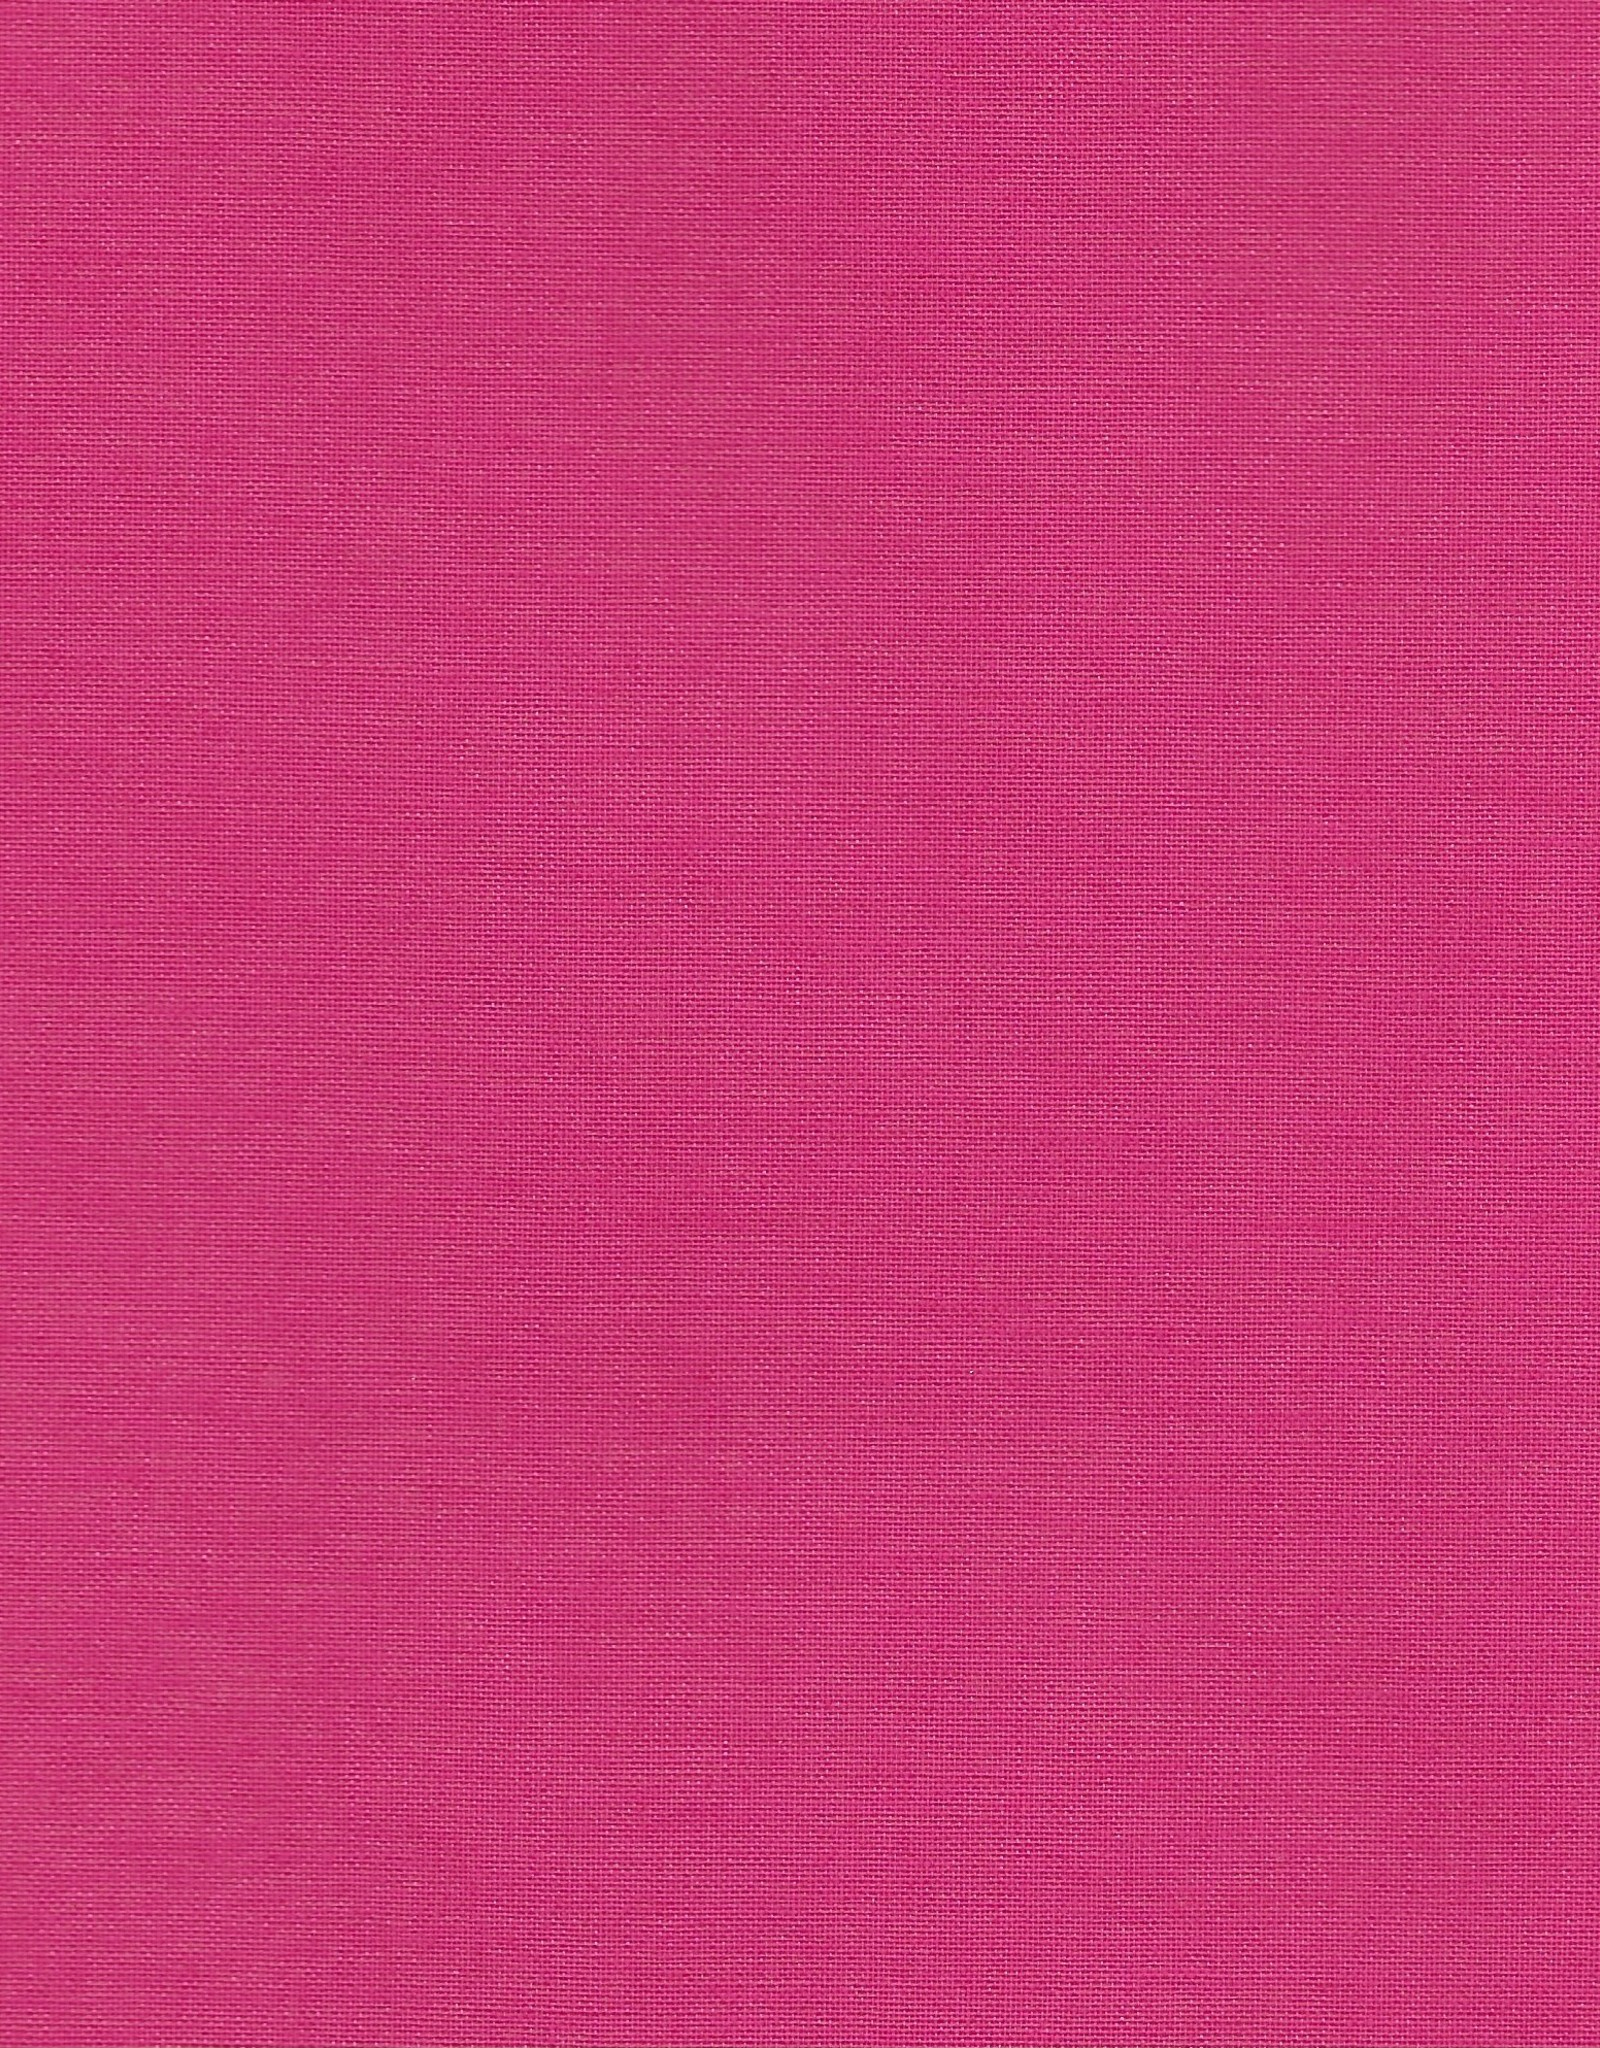 "Book Cloth Shocking Pink, 17.5"" x 19"", 1 Sheet, Acid-Free, 100% Rayon, Paper Backed"